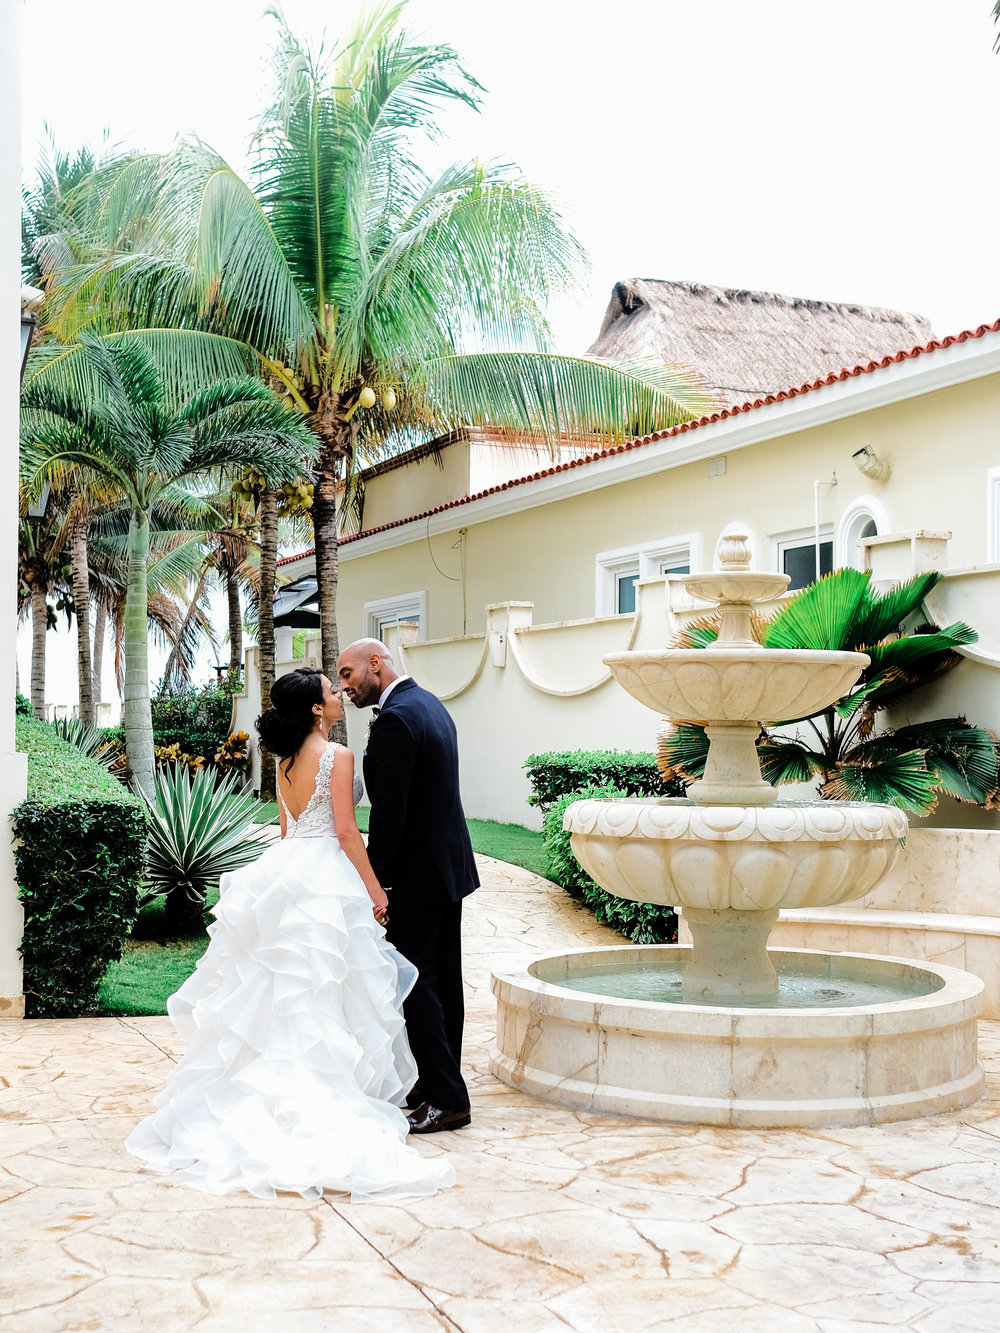 mexico_destination_wedding_villa_la_joya_cancun_31.jpg